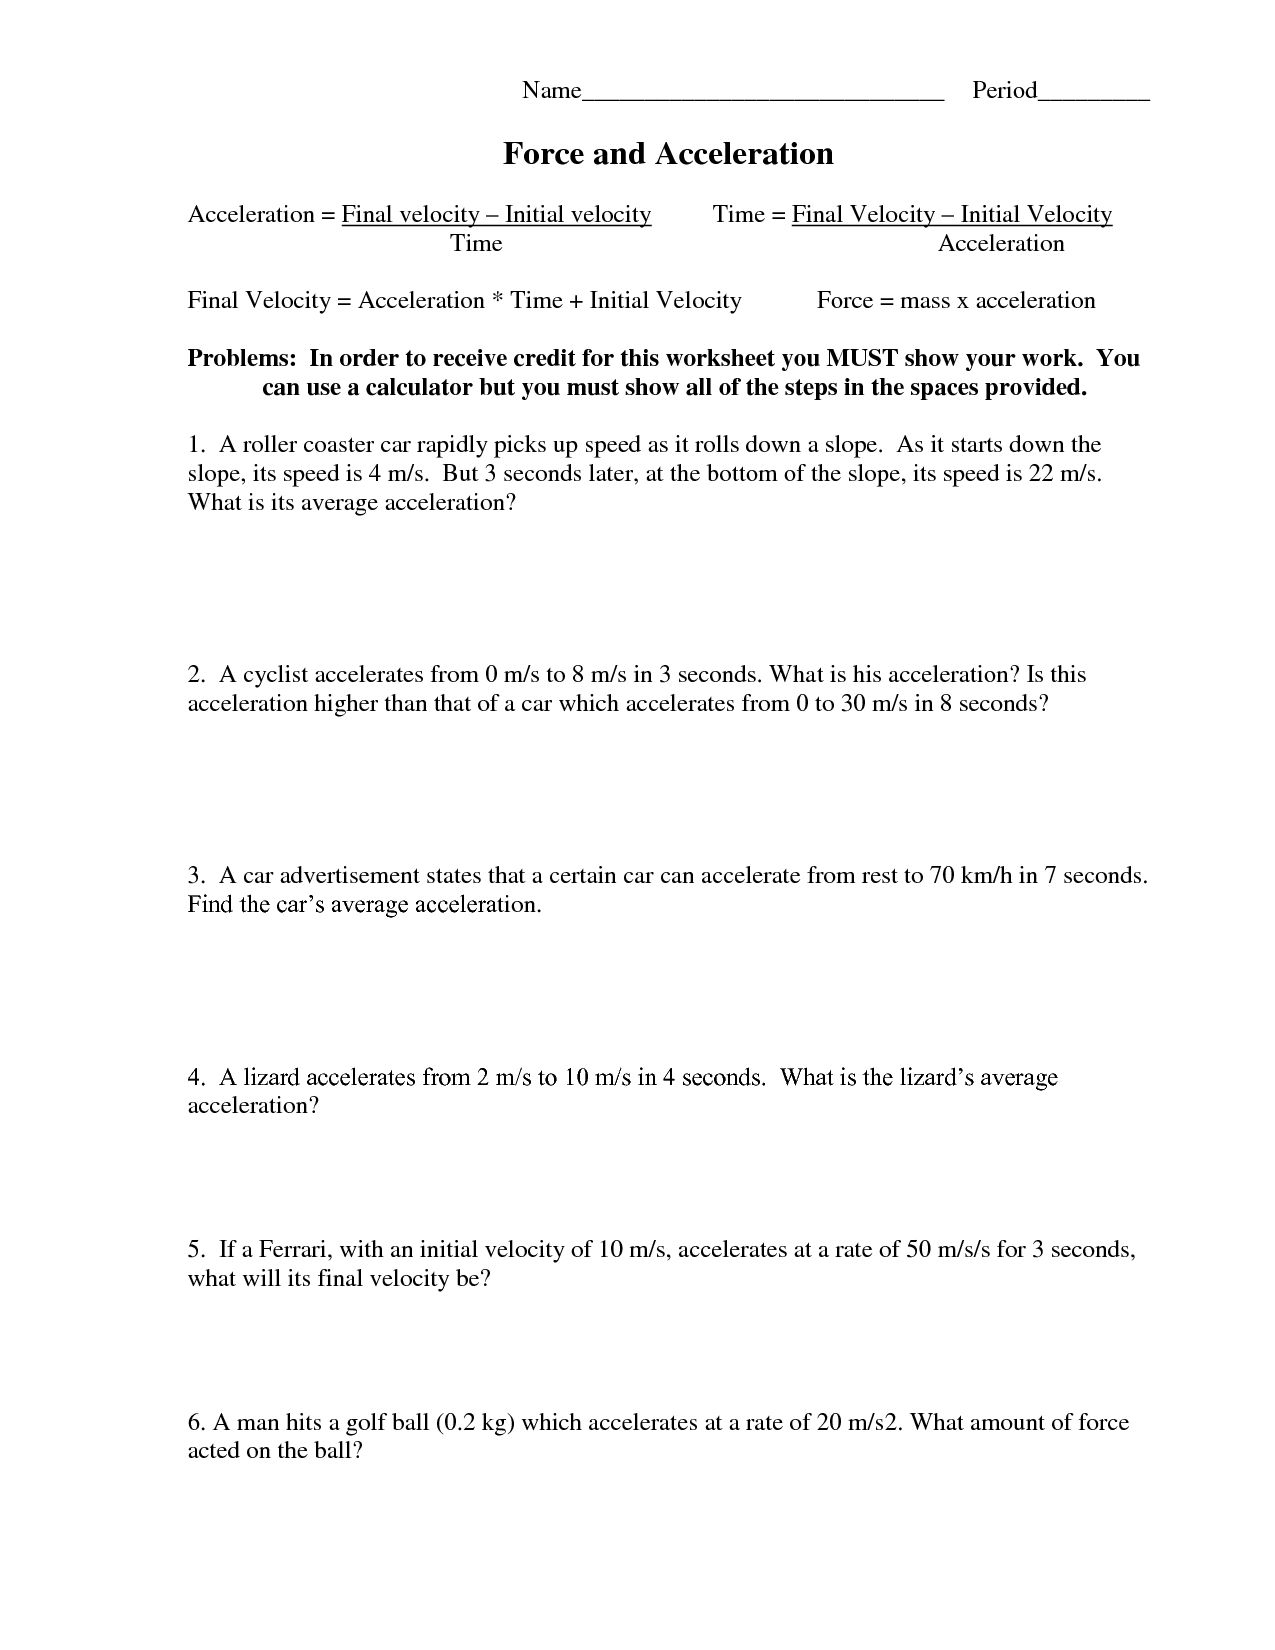 Net Force And Acceleration Worksheet Answers  Briefencounters Or Net Force And Acceleration Worksheet Answers